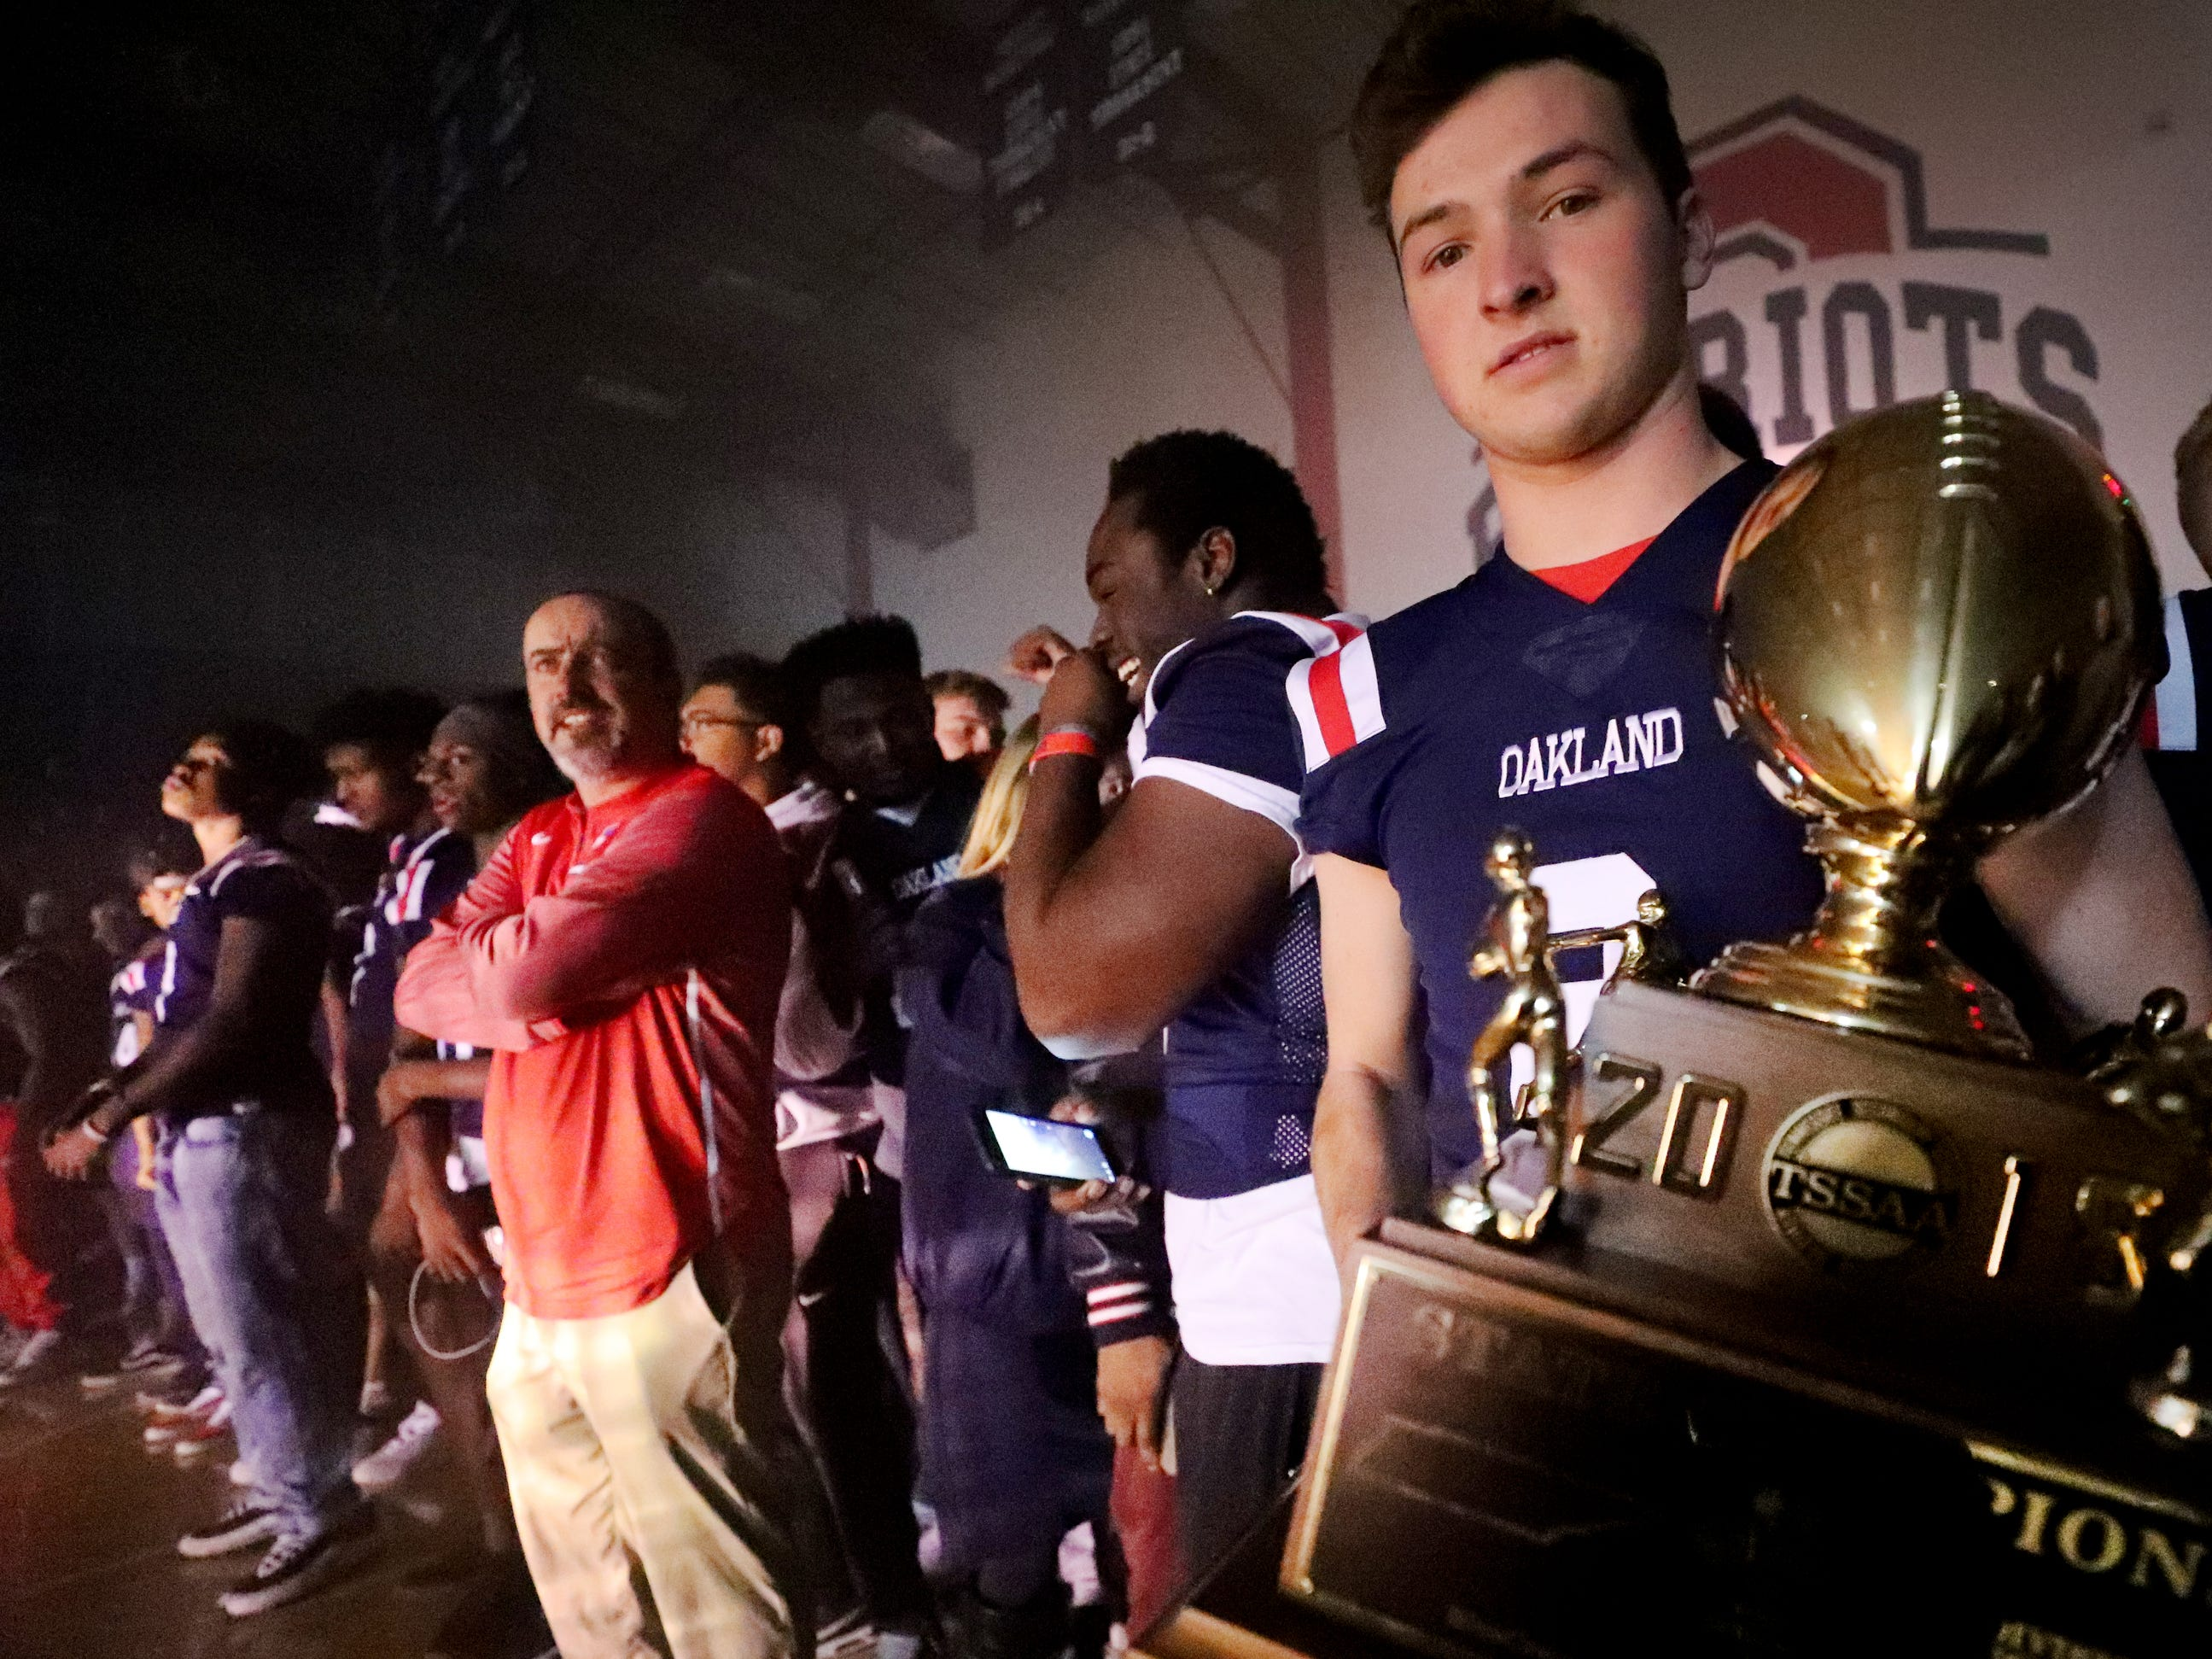 Oakland's quarterback Brevin Linnell (2) hold the trophy as he stands with the team as Oakland High School holds a pep rally, on Monday, Dec. 3, 2018 at the school after the football team won the 6A State Championship BlueCross Bowl game against Westhaven on Thursday.